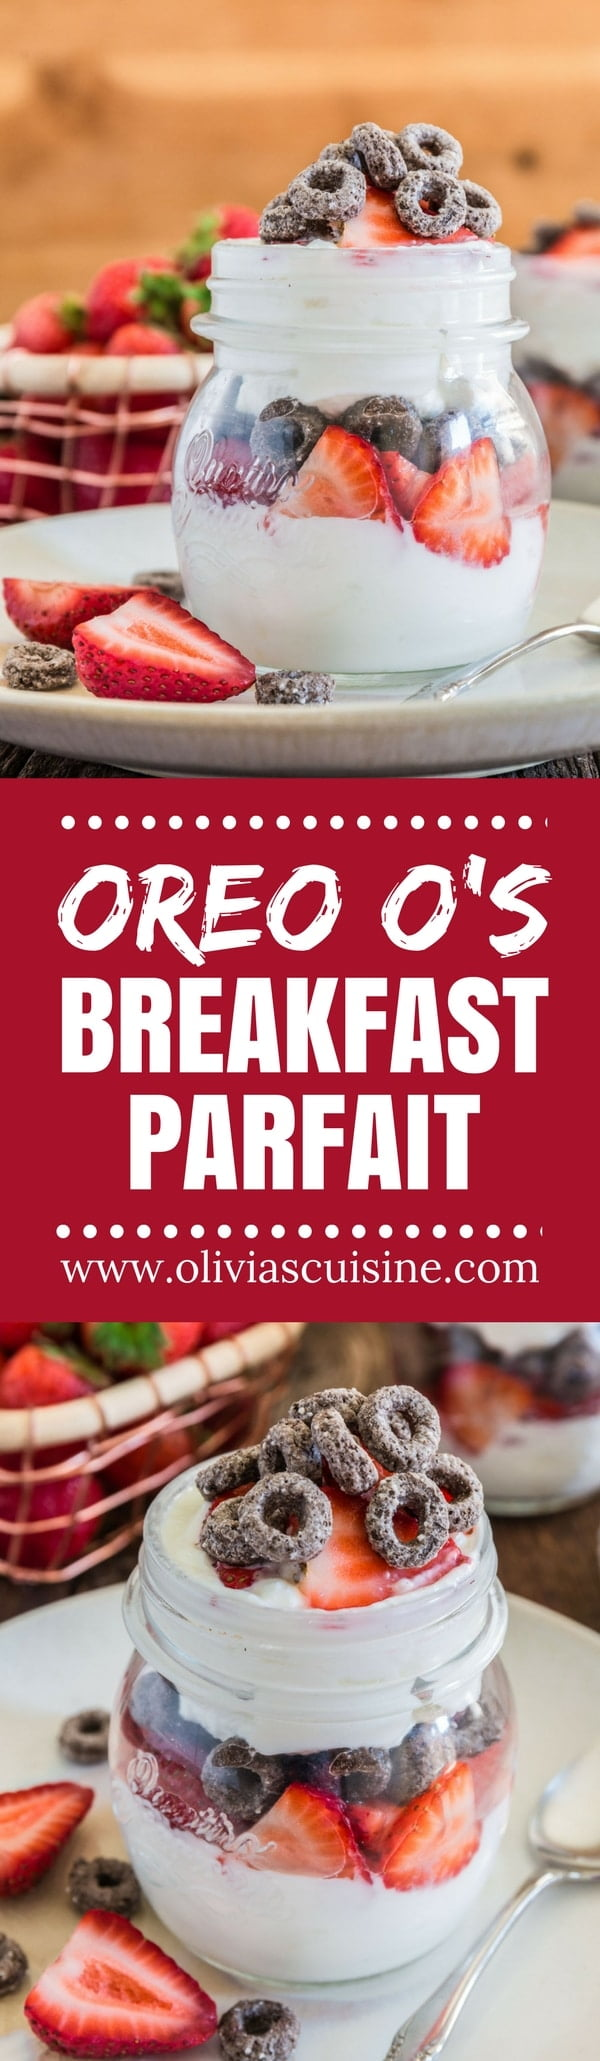 Oreo O's Breakfast Parfait | www.oliviascuisine.com | Tired of the same old, boring breakfast? These fun little parfaits are simple and oh so delicious, thanks to an old childhood favorite who is making a comeback! (Recipe and food photography by @oliviascuisine)